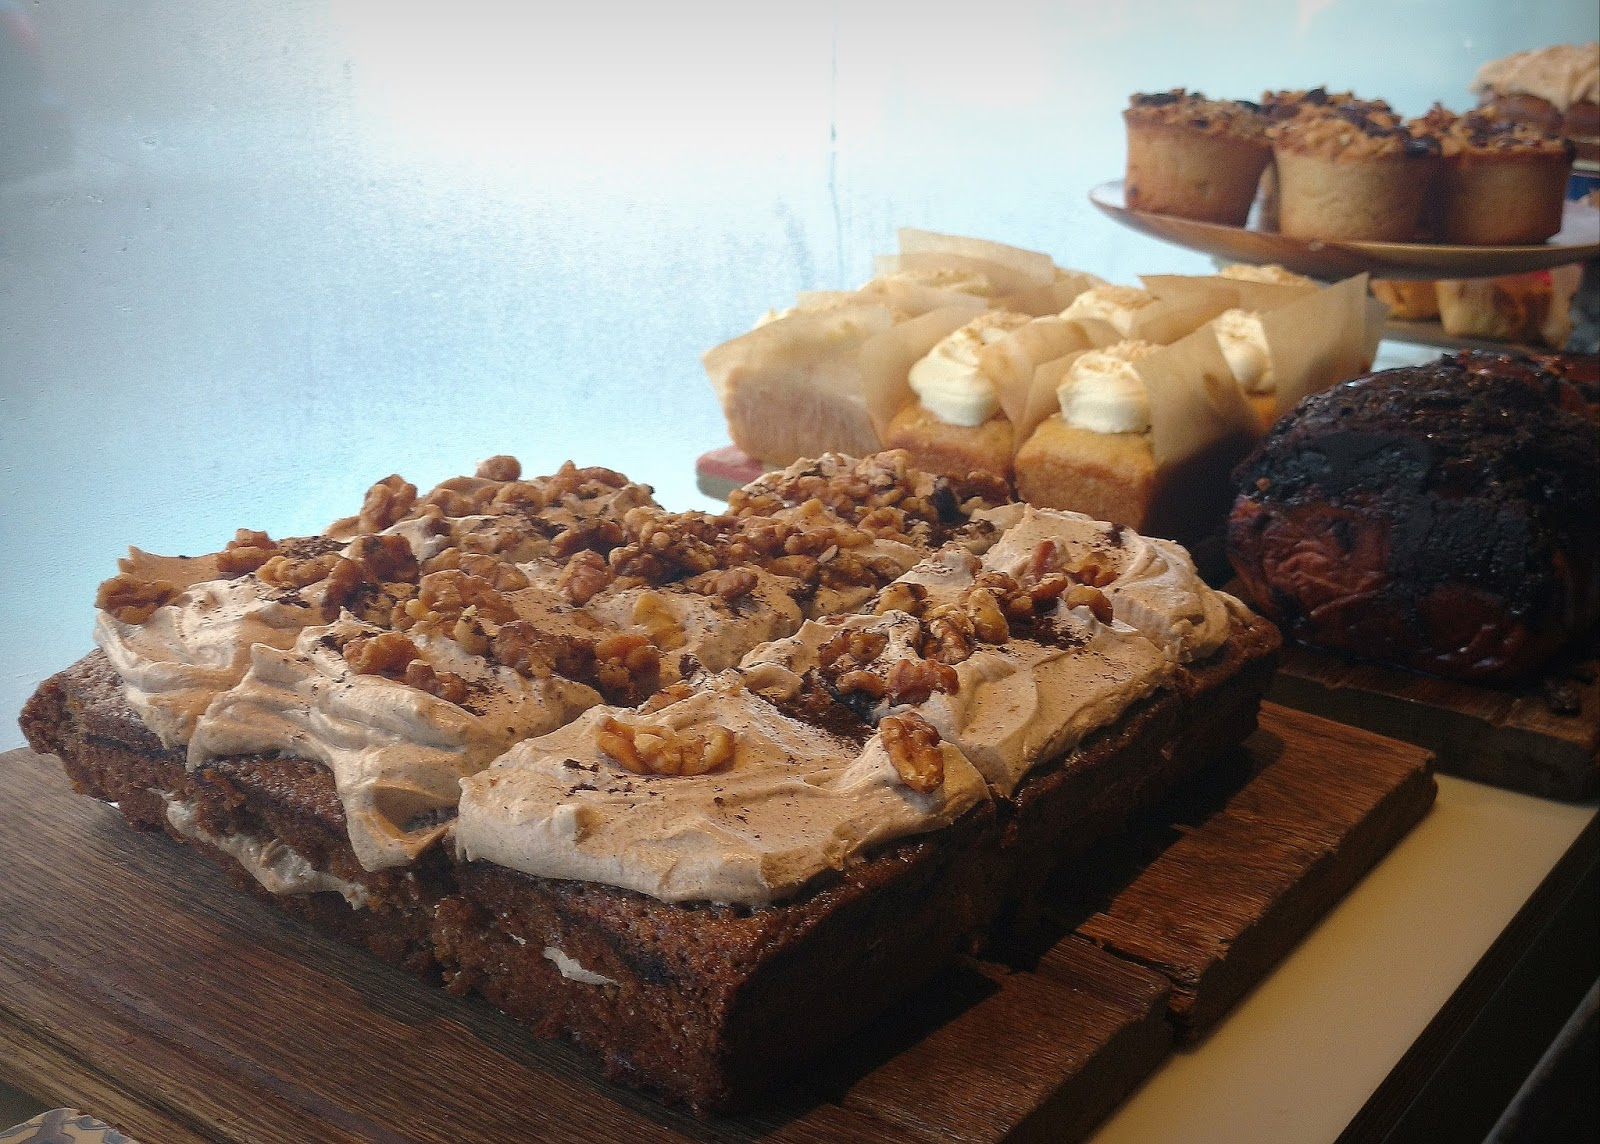 Honey and Co, where a chocolate babka has me reminiscing about family meals during Passover.